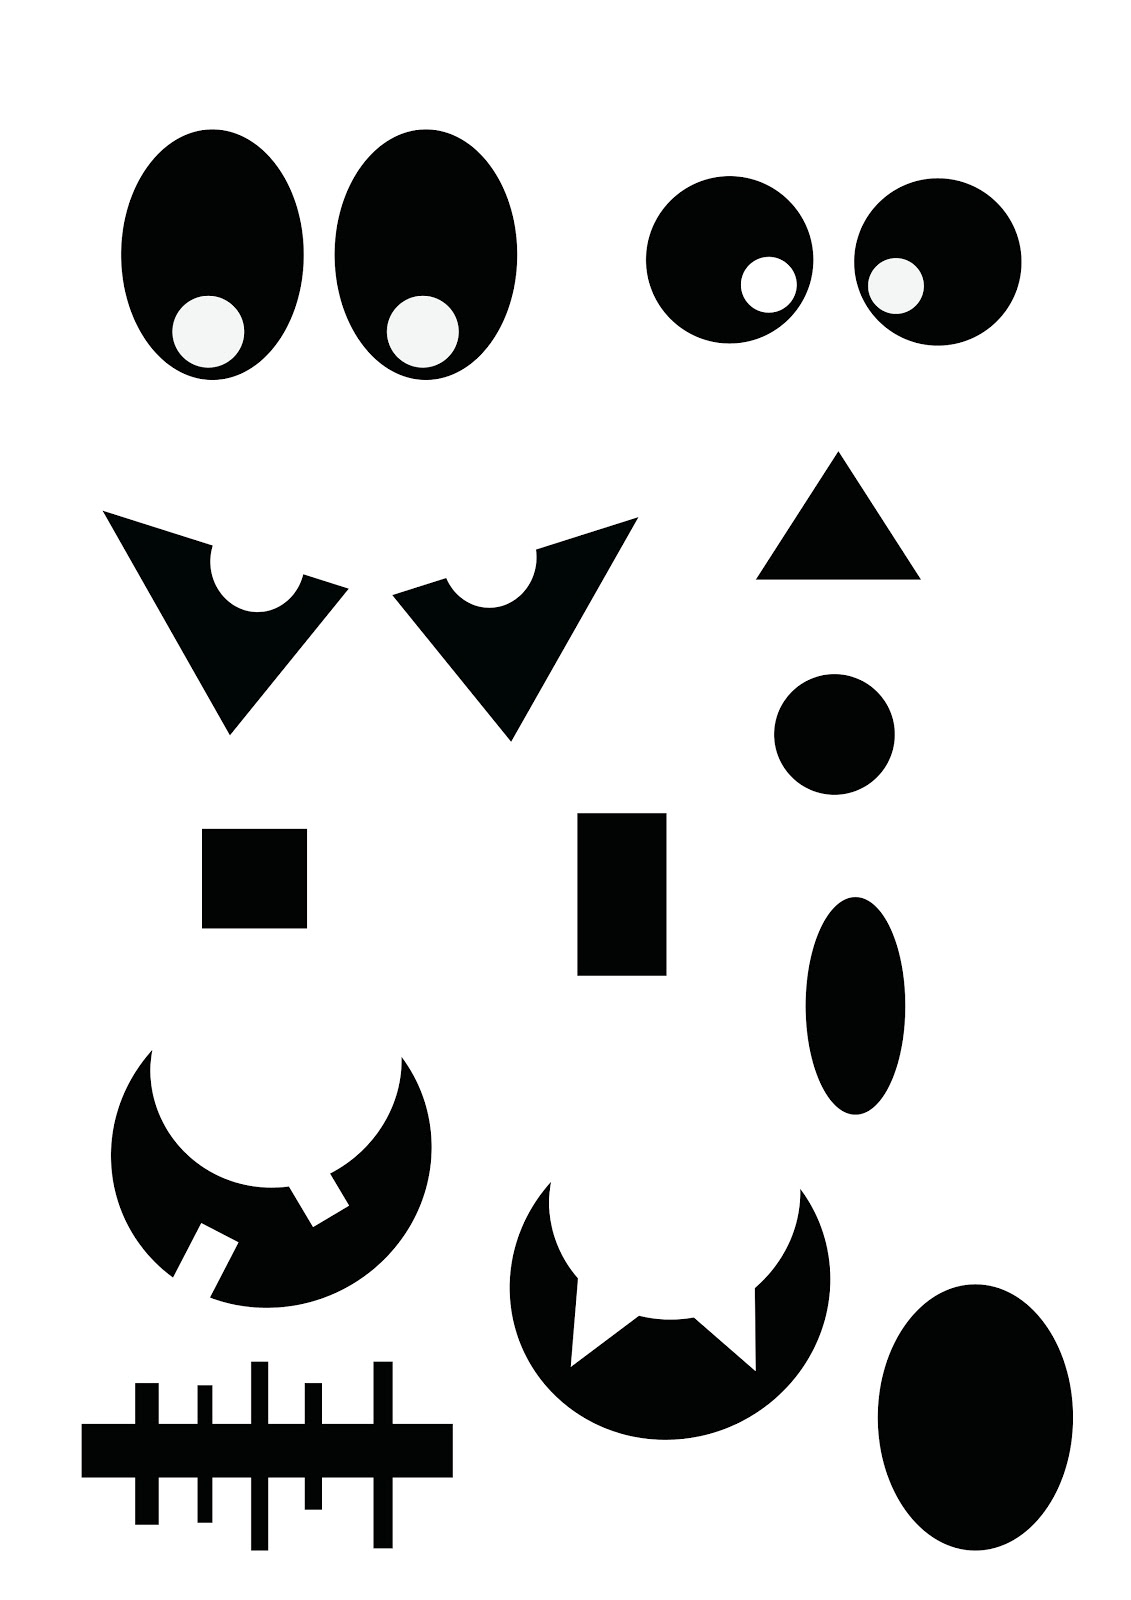 Free Printable Day Dead Coloring Pages in addition Stock Illustration Ghost Faces Pumpkin Faces Design Image44265196 further Printable Halloween Decorations further Desenhos Do Halloween Para Colorir E besides Printable Ghost Faces. on scary halloween decorations faces